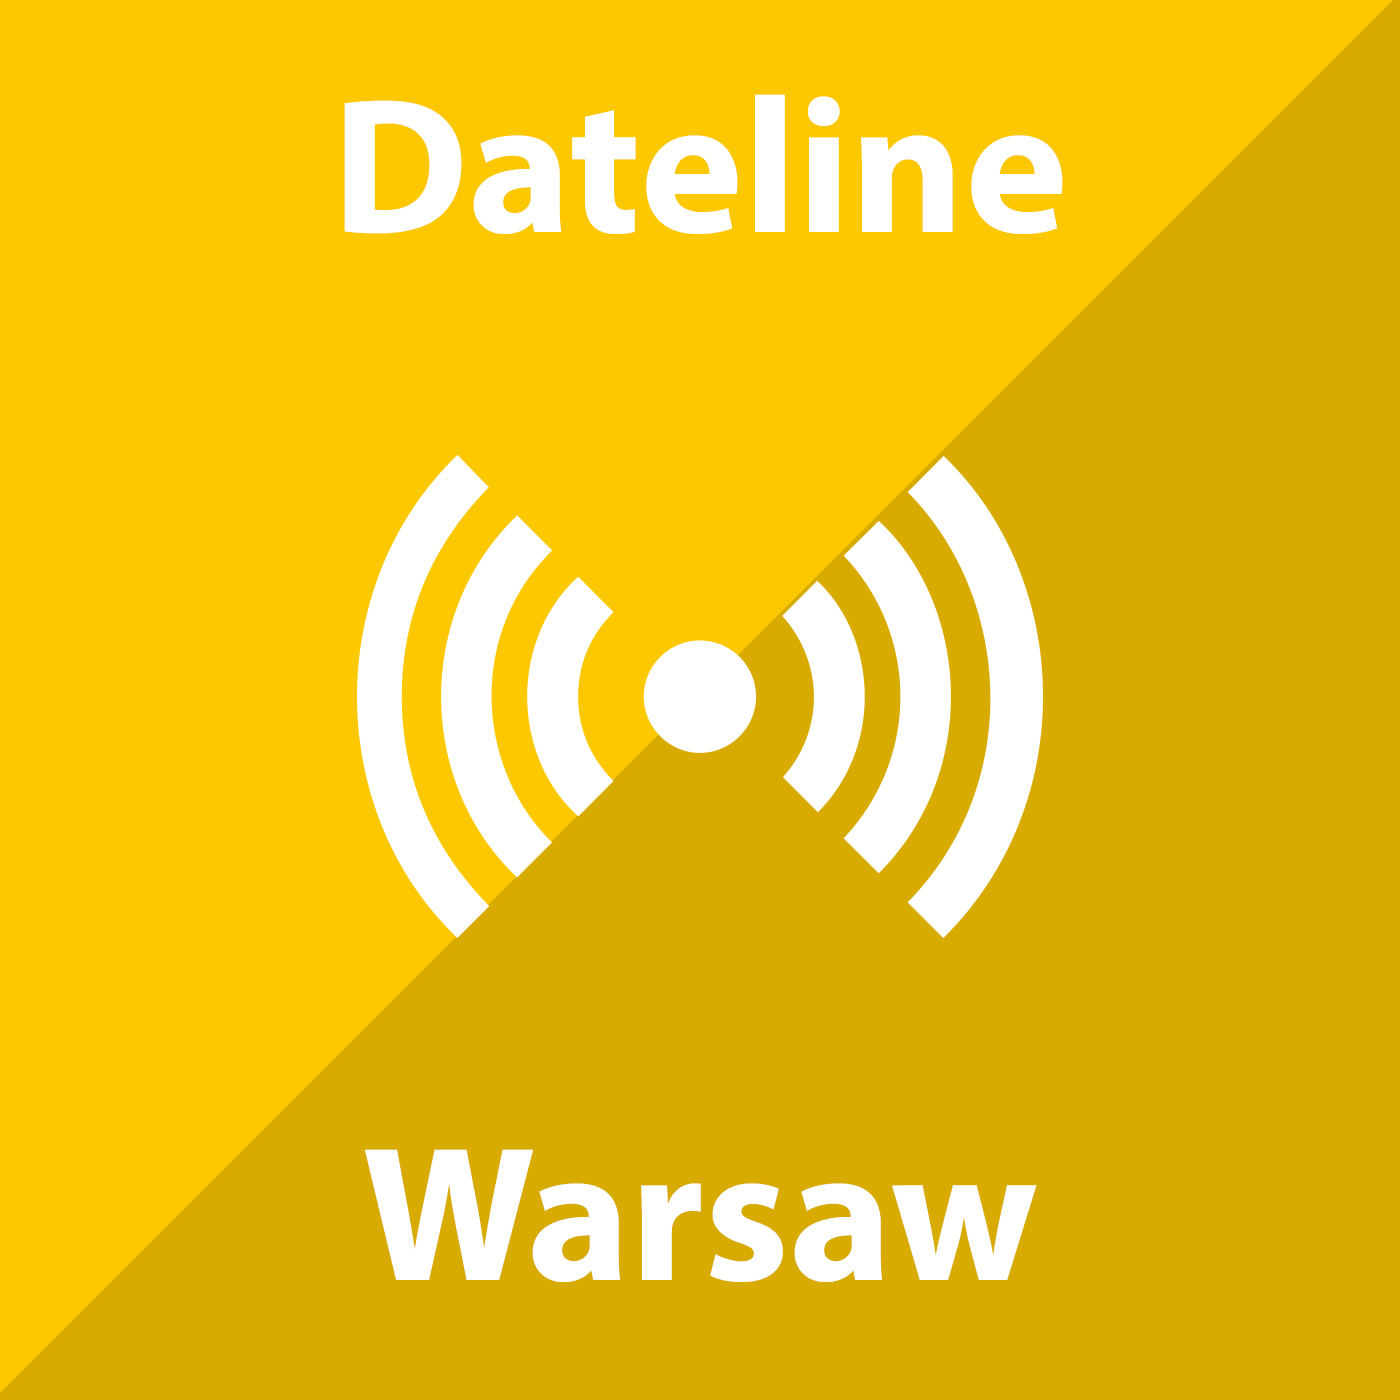 Dateline Warsaw